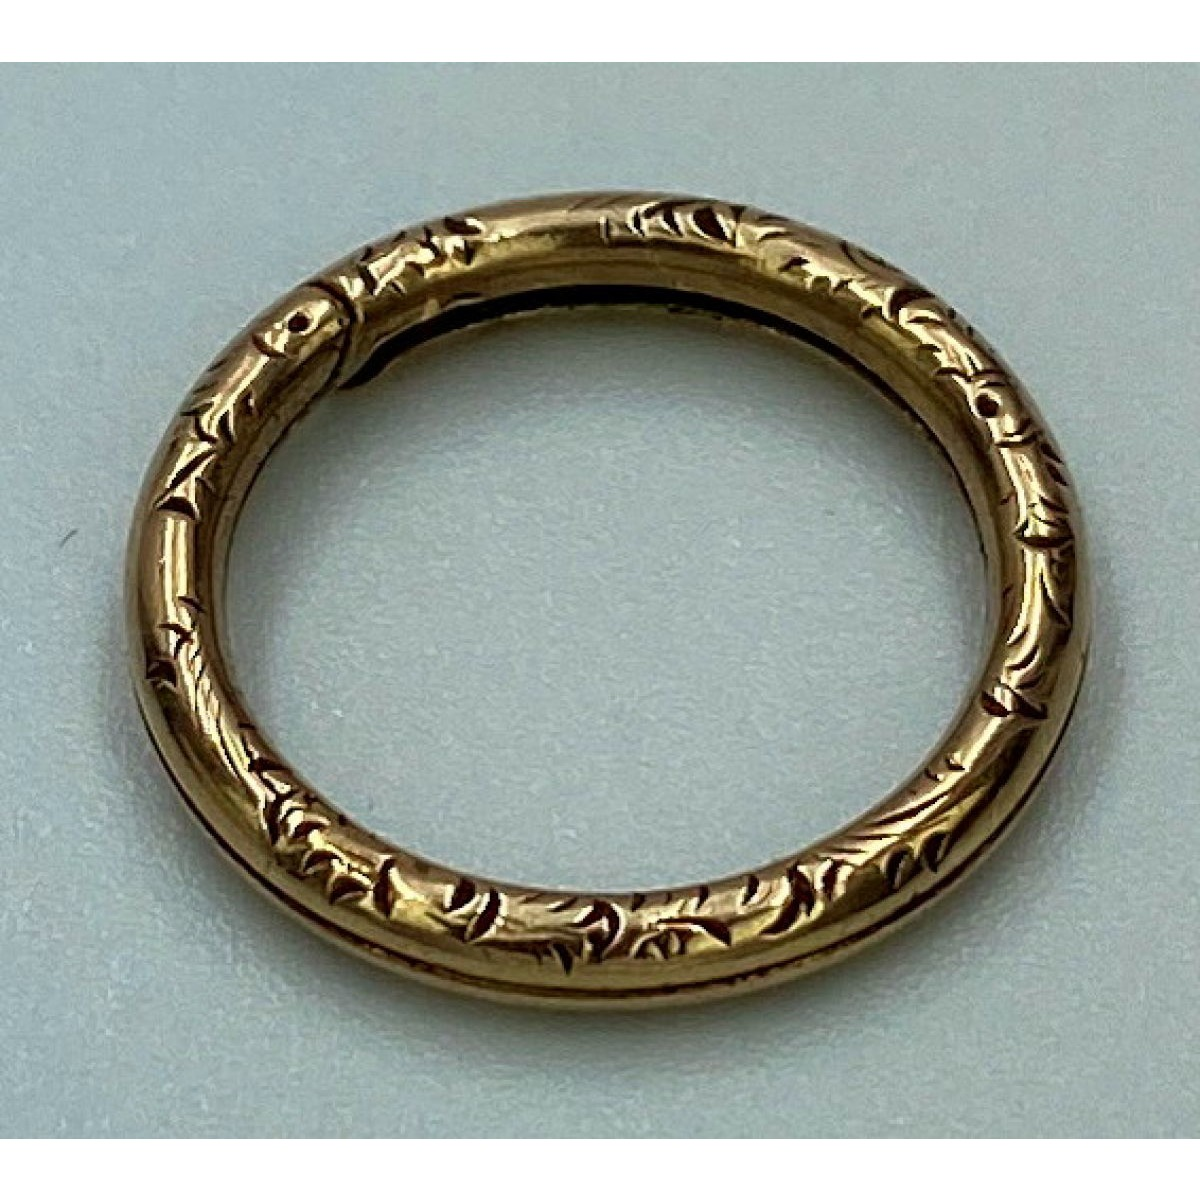 Unusual Antique English Engraved Gold Split Ring - Fun, Something Different